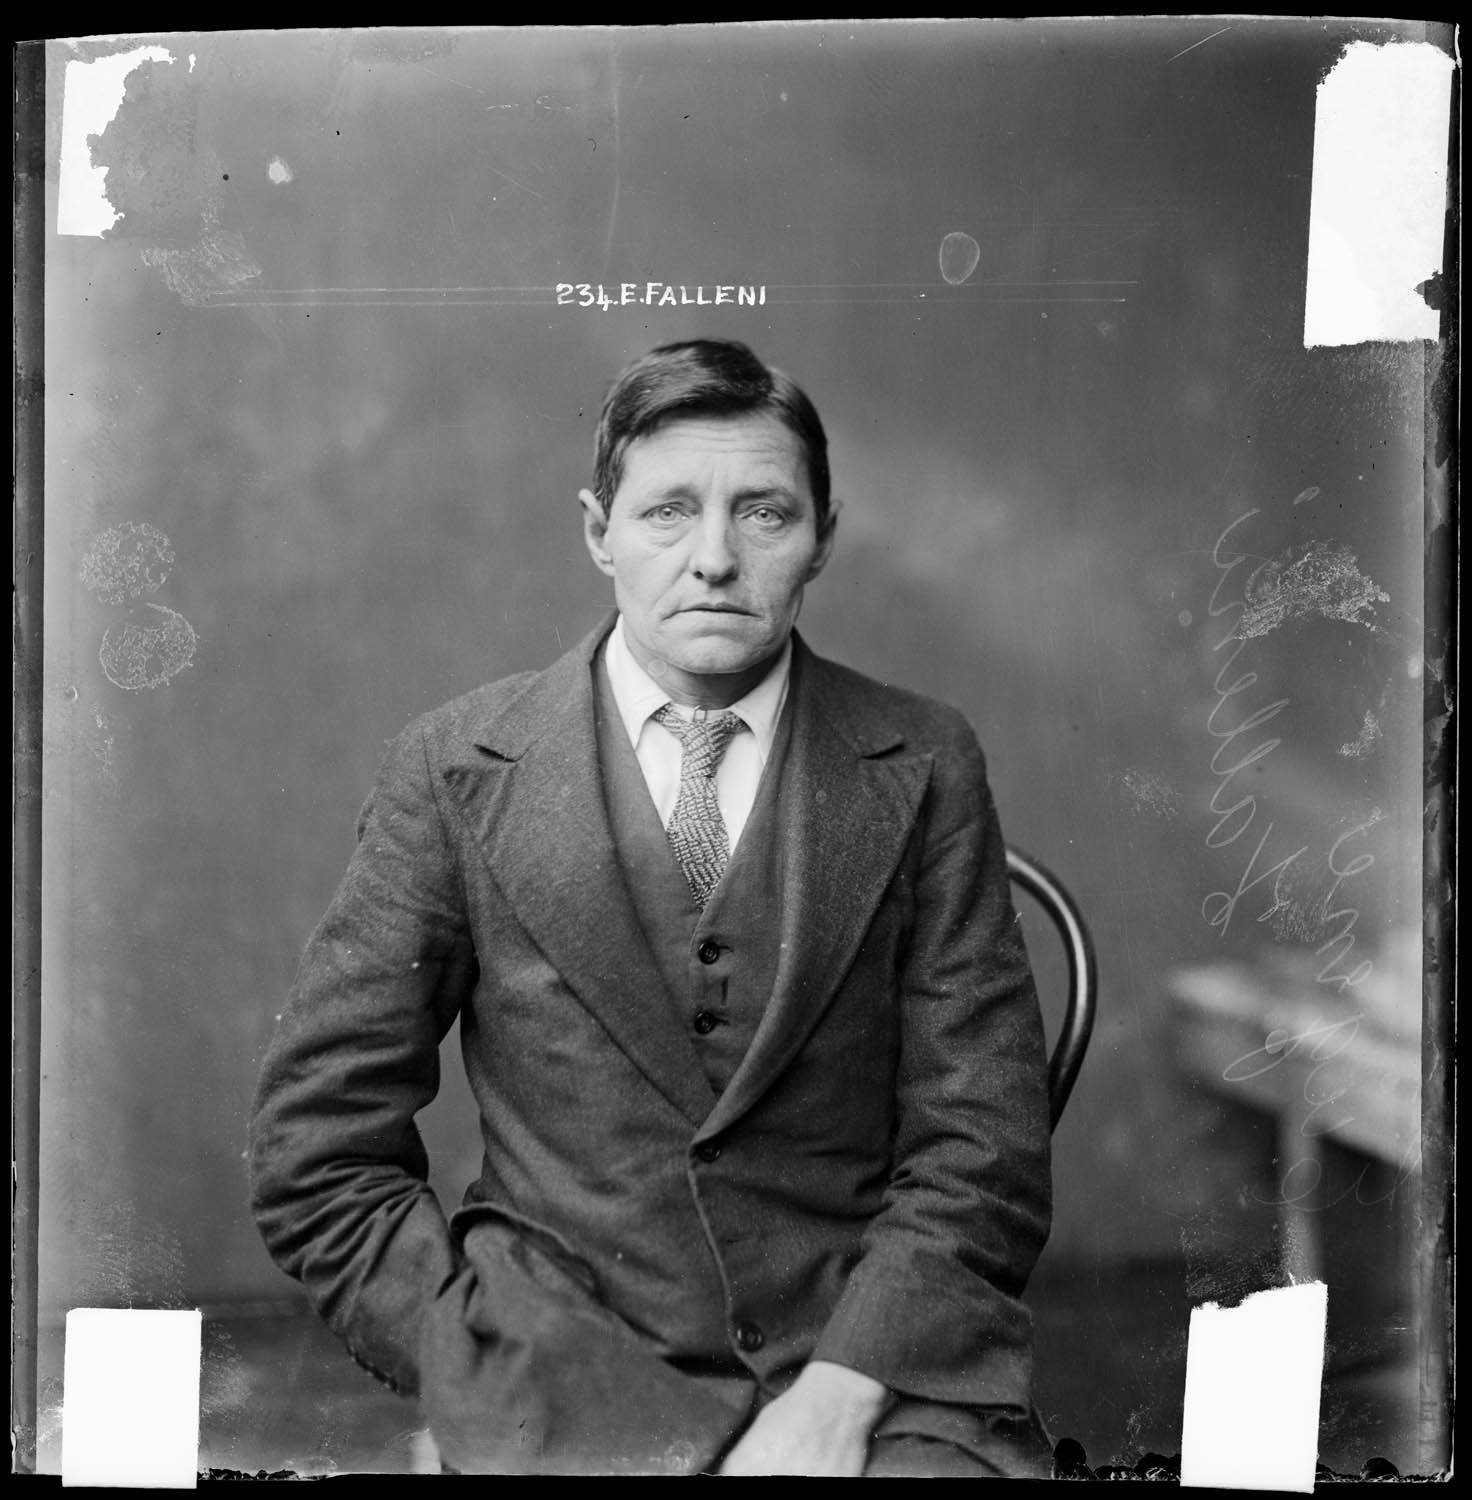 Eugenia Falleni, alias Harry Crawford, special photograph number 234, Central Police Station Sydney, 1920.